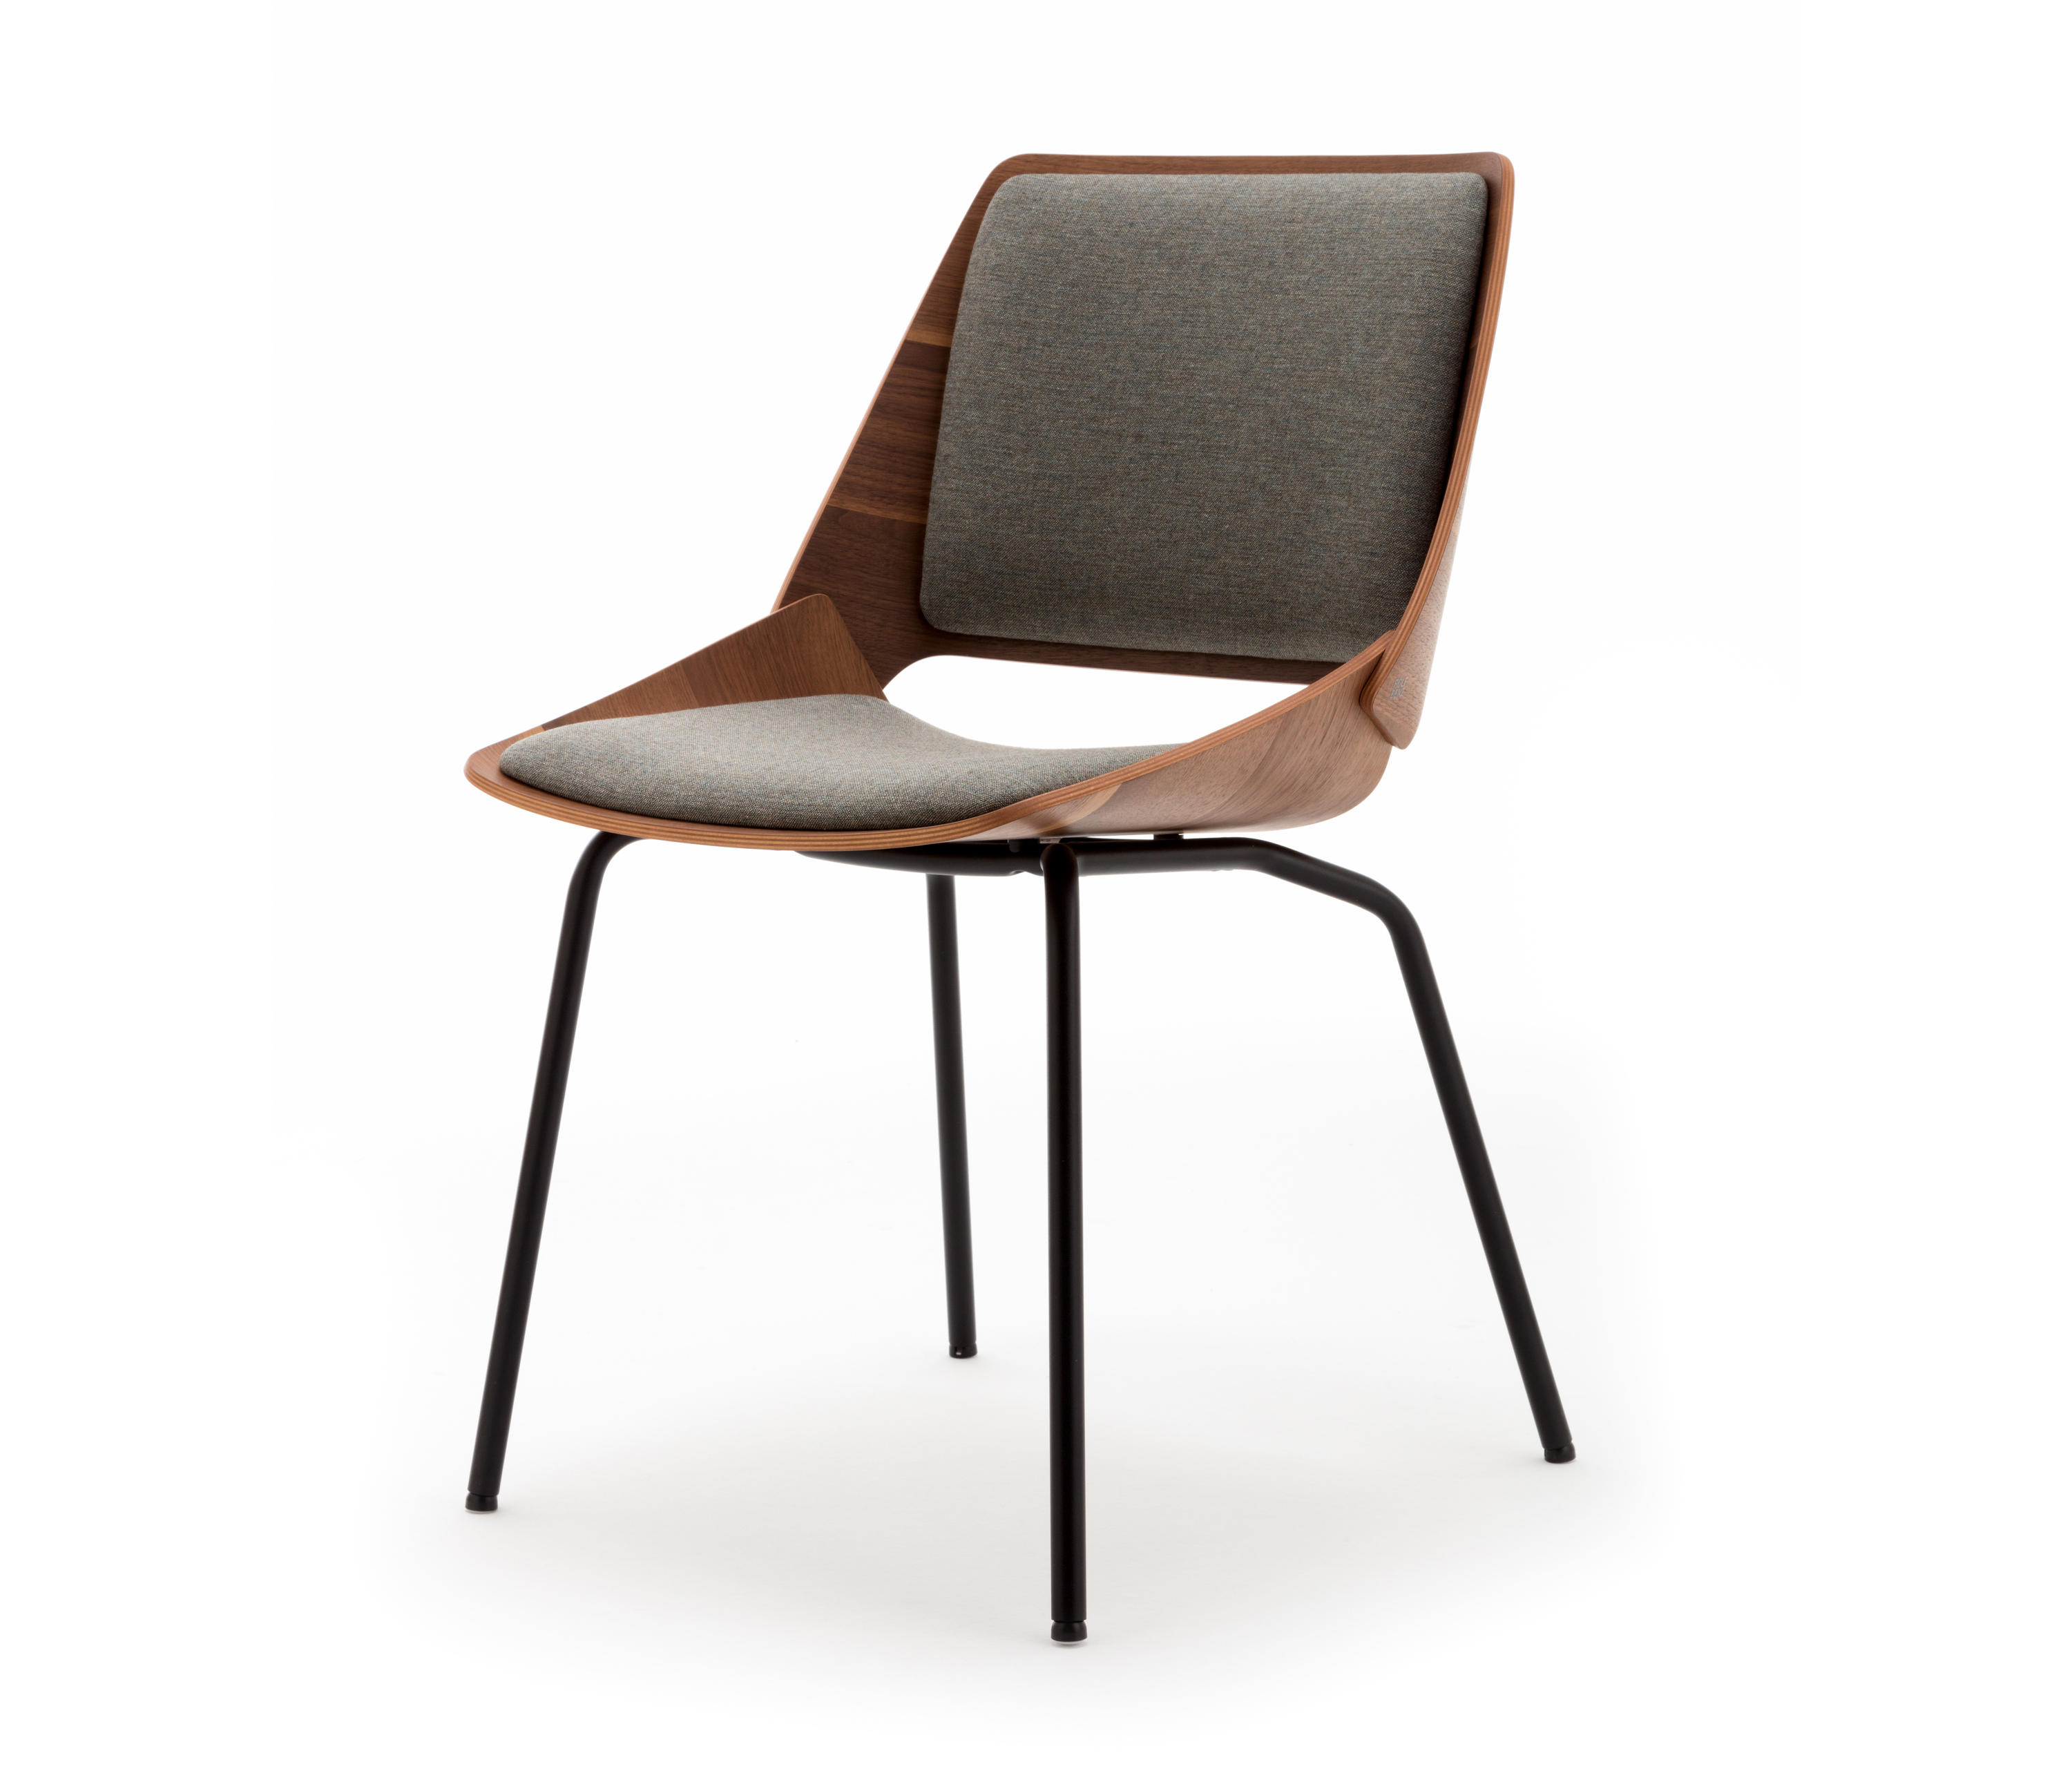 Rolf Benz 650 Chairs From Rolf Benz Architonic